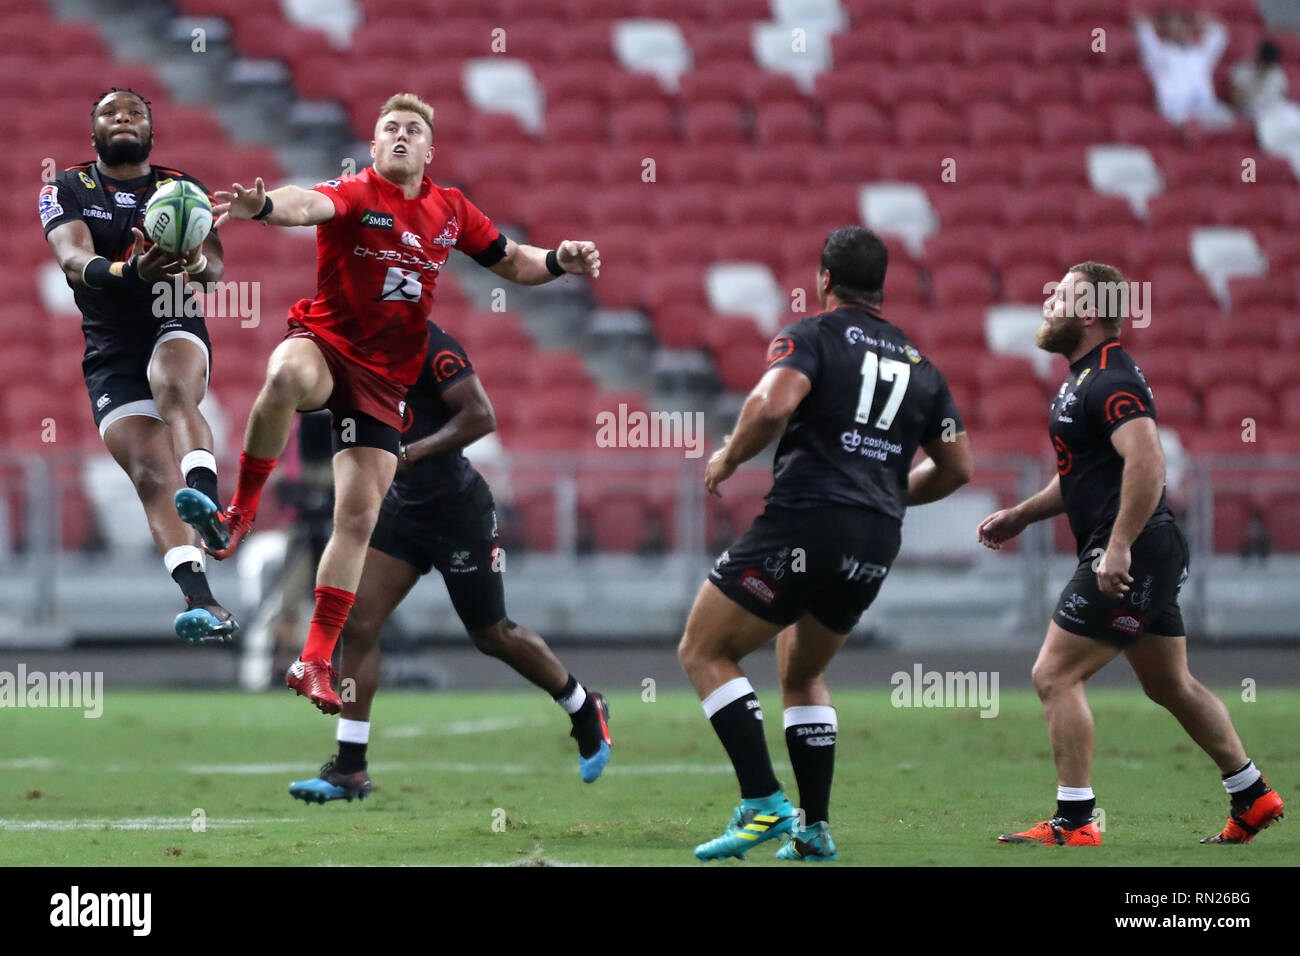 Singapore. 16th Feb, 2019. Lukhanyo Am, left, of the Sharks competes for the ball with Shane Gates of the Sunwolves during the round 1 Super Rugby match between the Sunwolves and the Sharks at the National Stadium. Credit: Paul Miller/ZUMA Wire/Alamy Live News - Stock Image